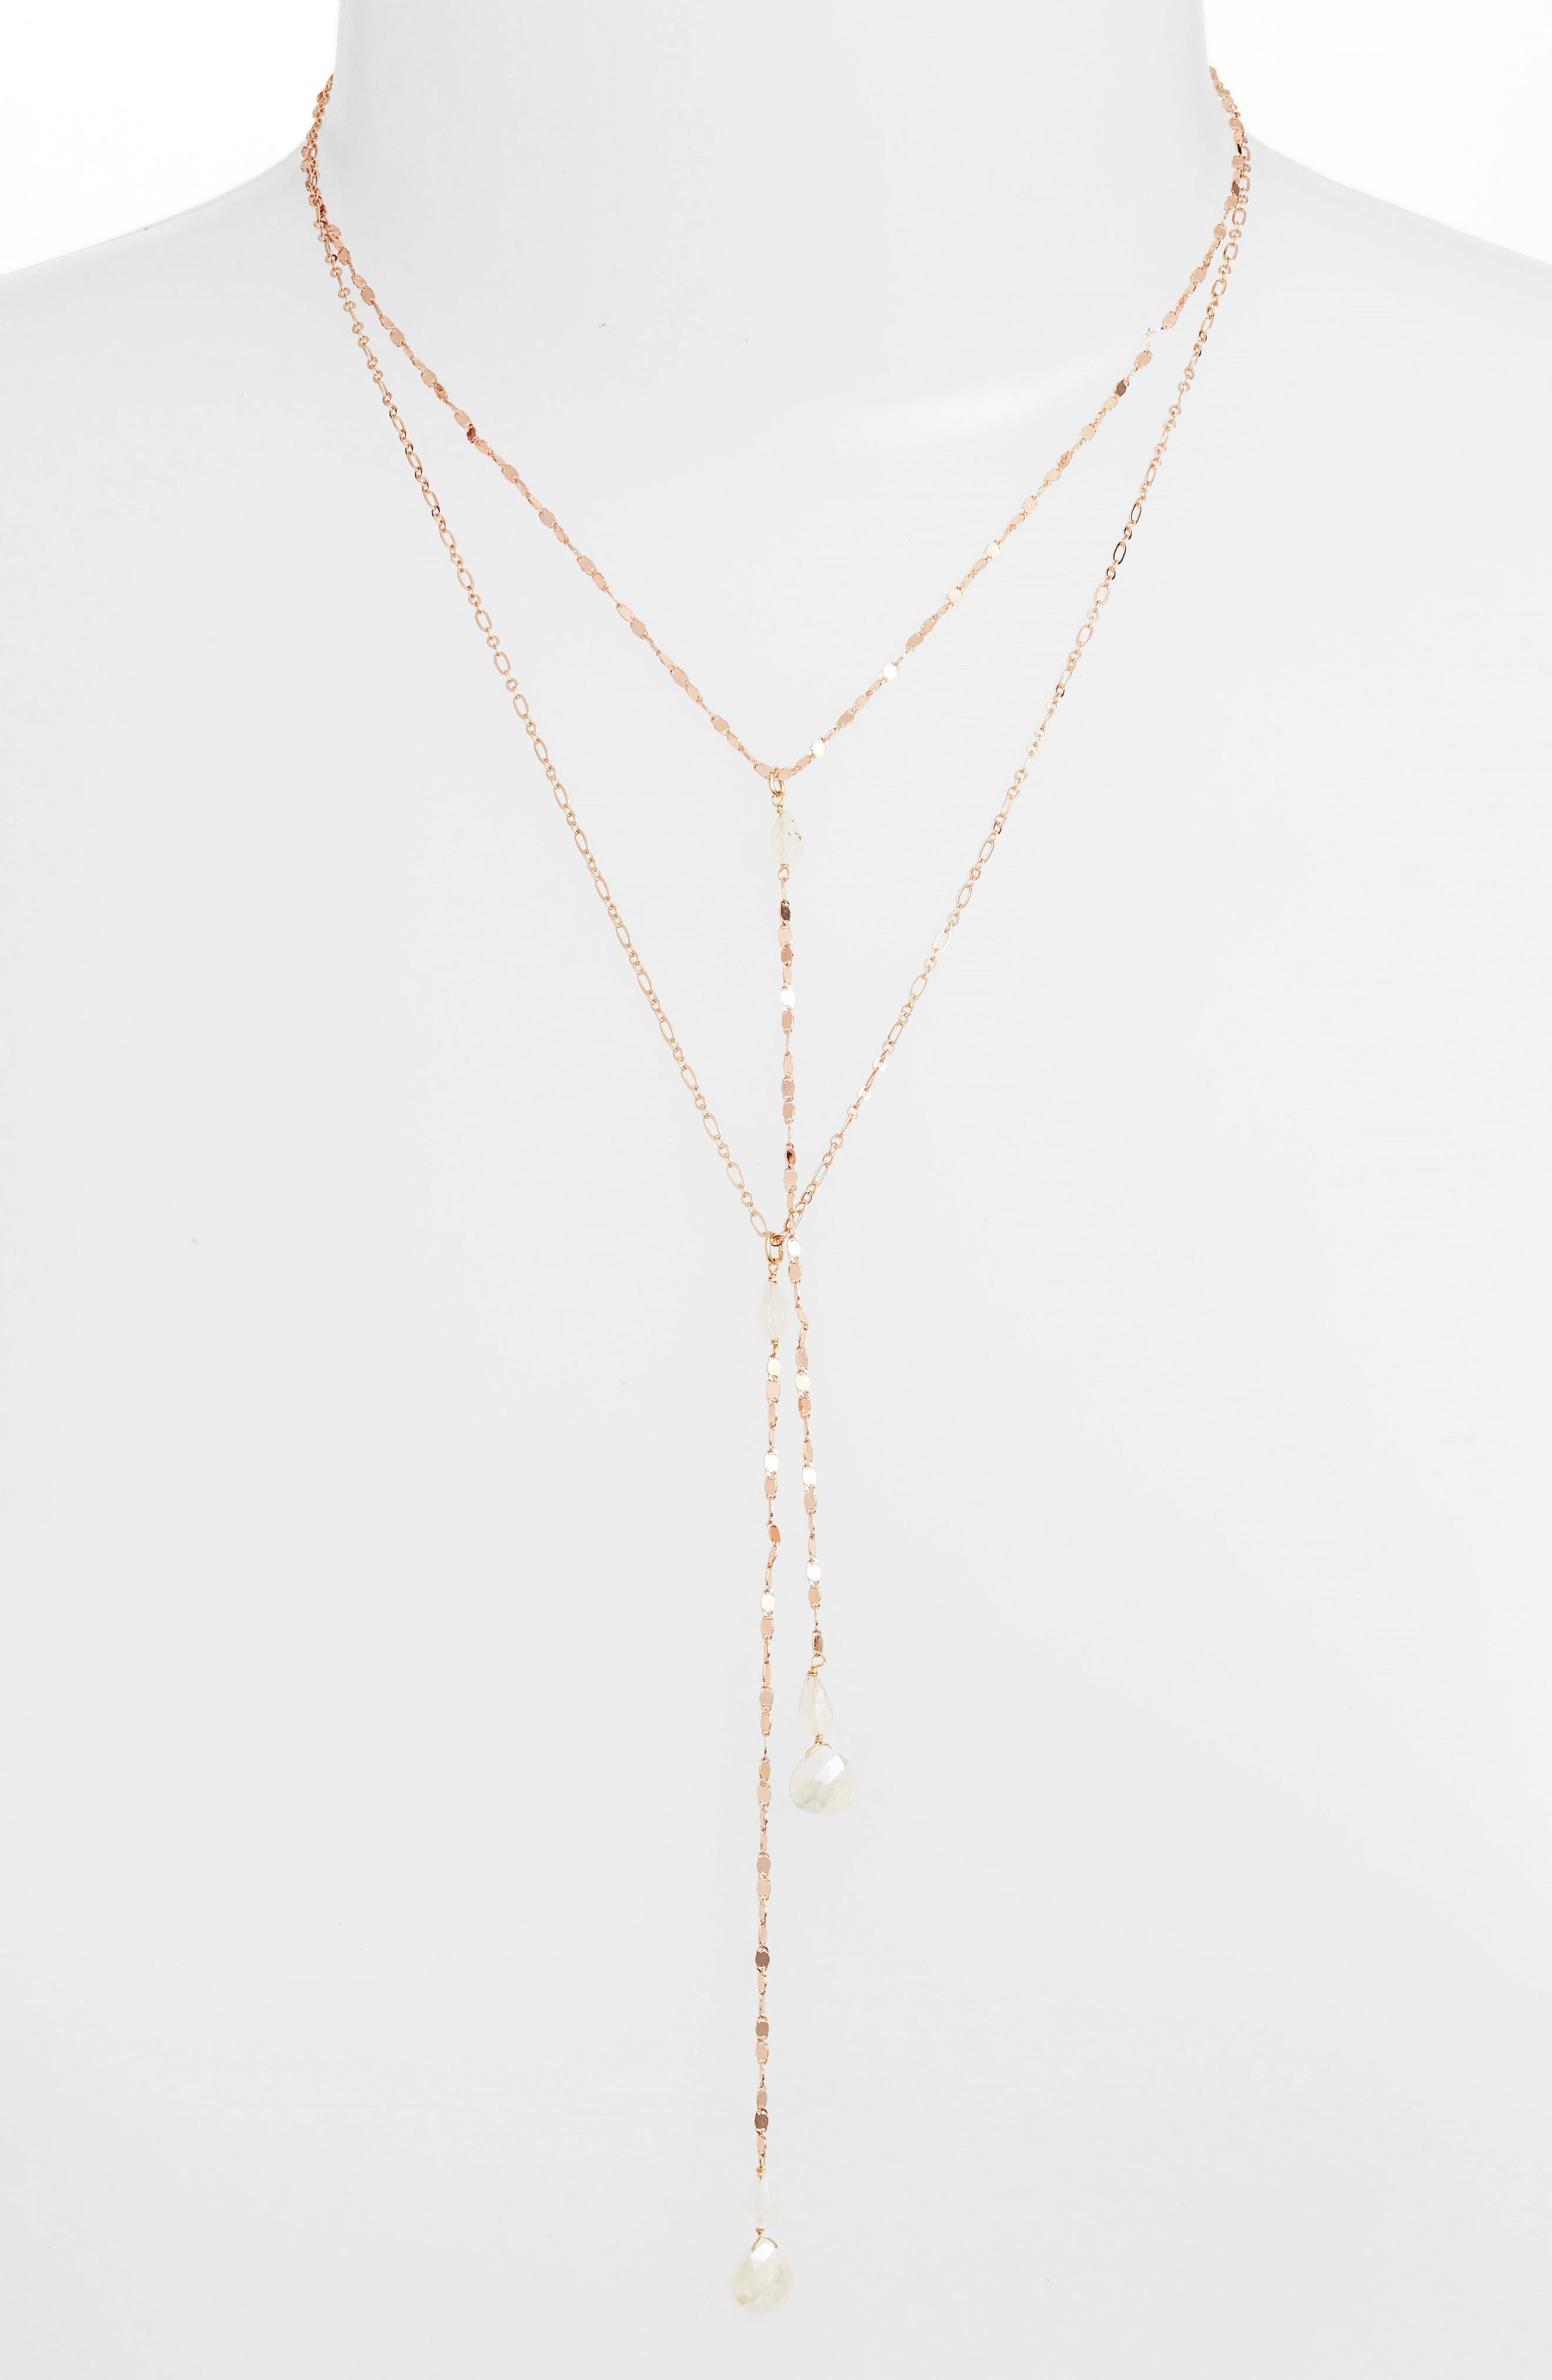 Layered Lariat Necklace,                             Main thumbnail 1, color,                             ROSE GOLD/ MOONSTONE